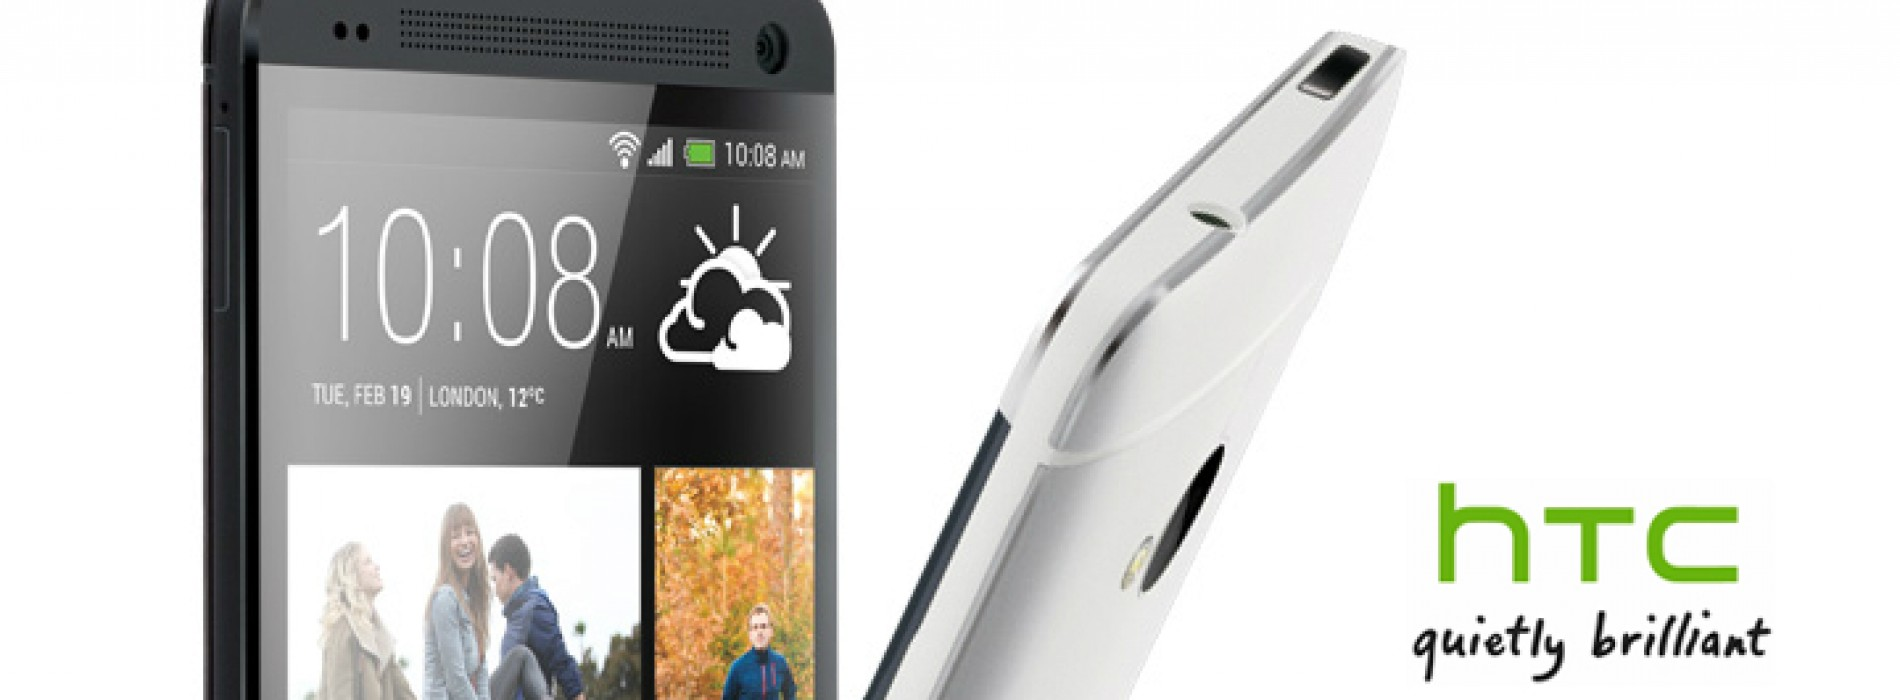 HTC's downward spiral continues with worst quarterly profits on record